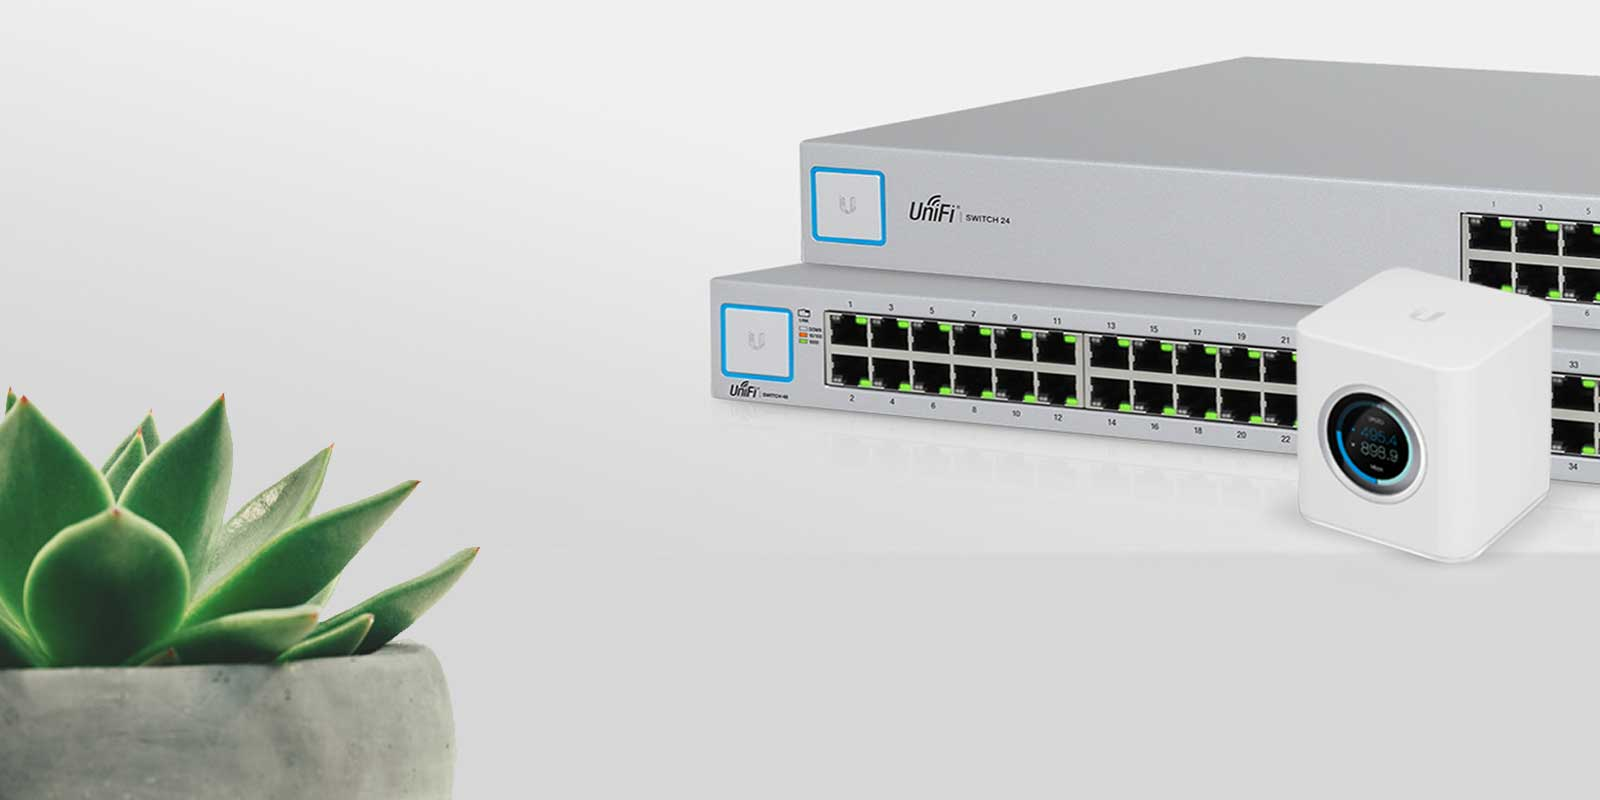 Looking for wireless or network gear like MikroTik and Ubiquiti?